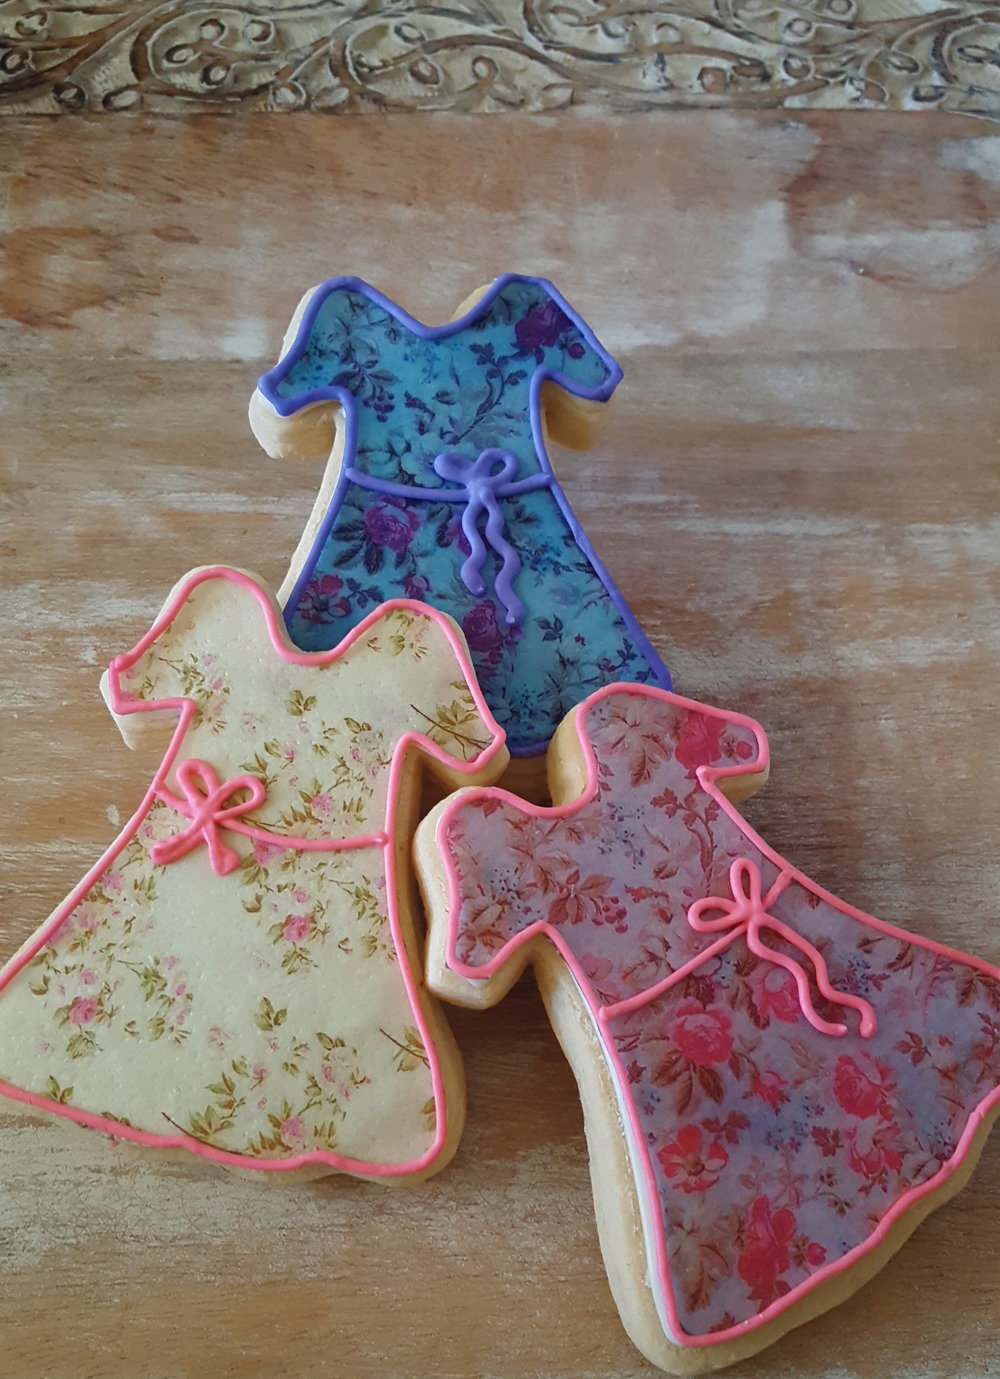 calico dress cookies.jpg